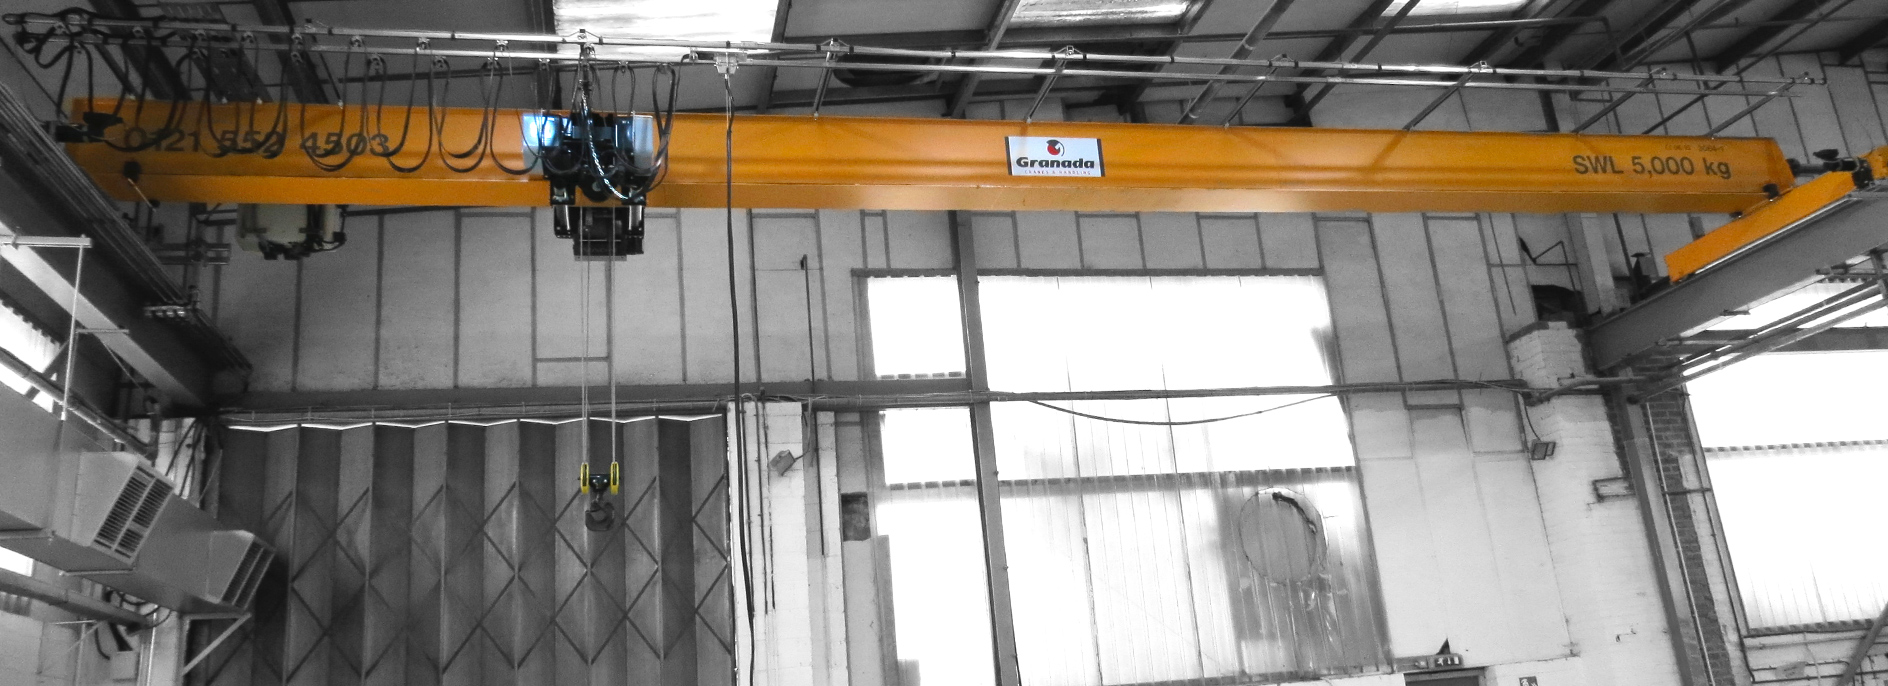 5 tonne overhead crane system from Granada Cranes and Handling